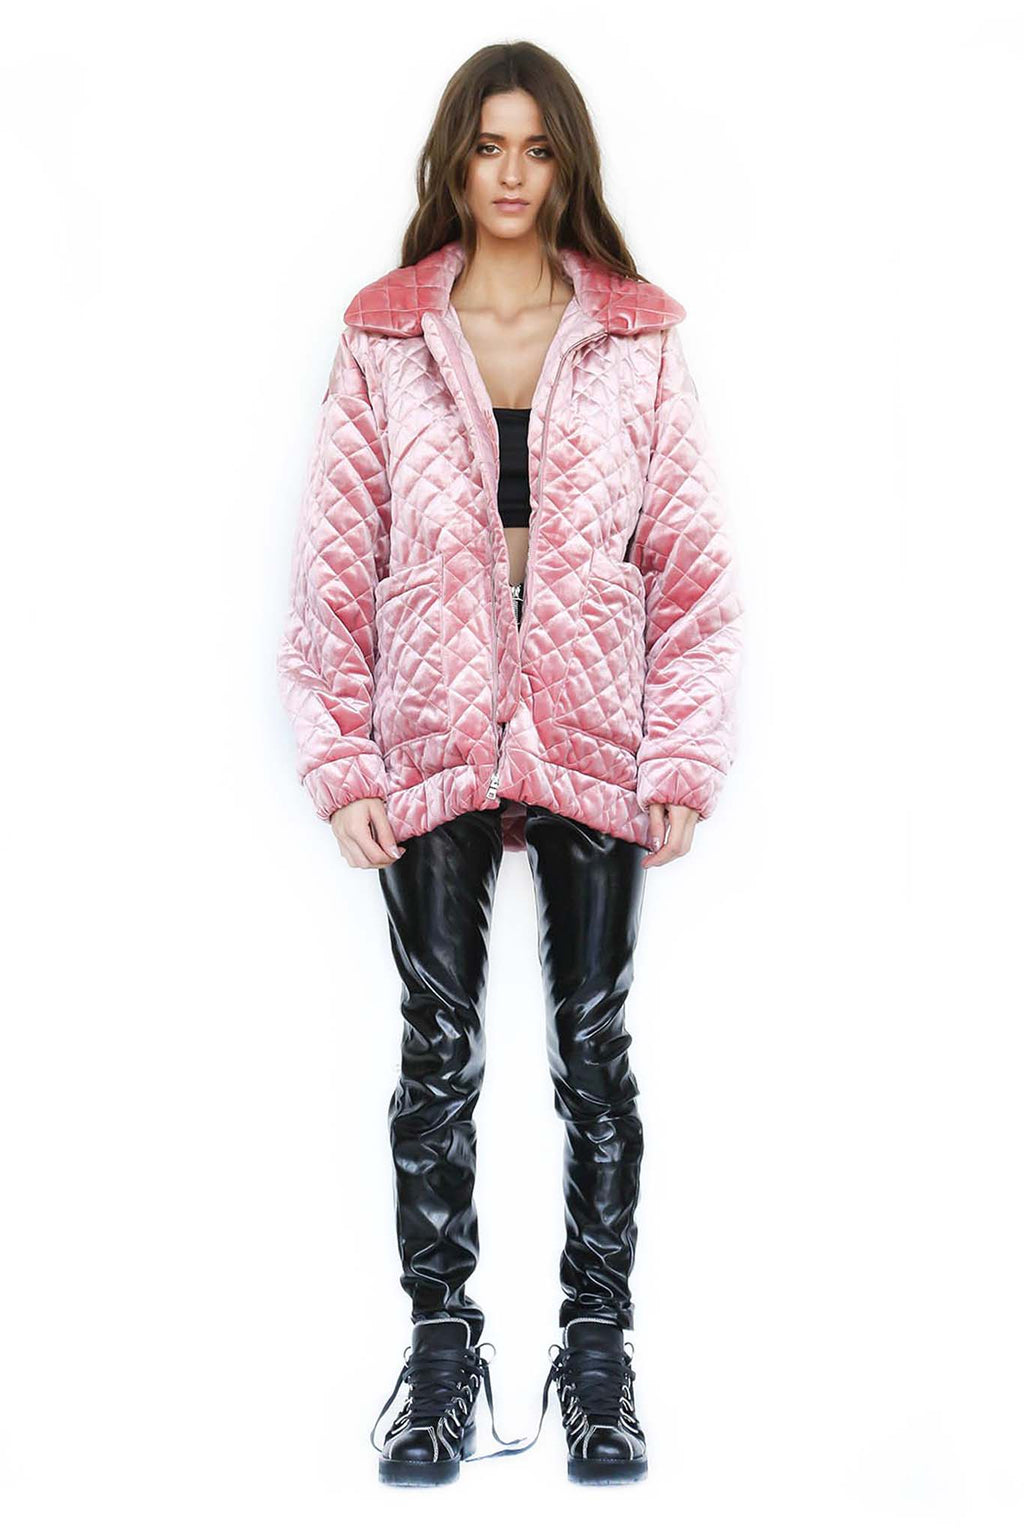 PRE-ORDER CONTRABAND JACKET - PINK (SHIPPING MID SEPTEMBER)